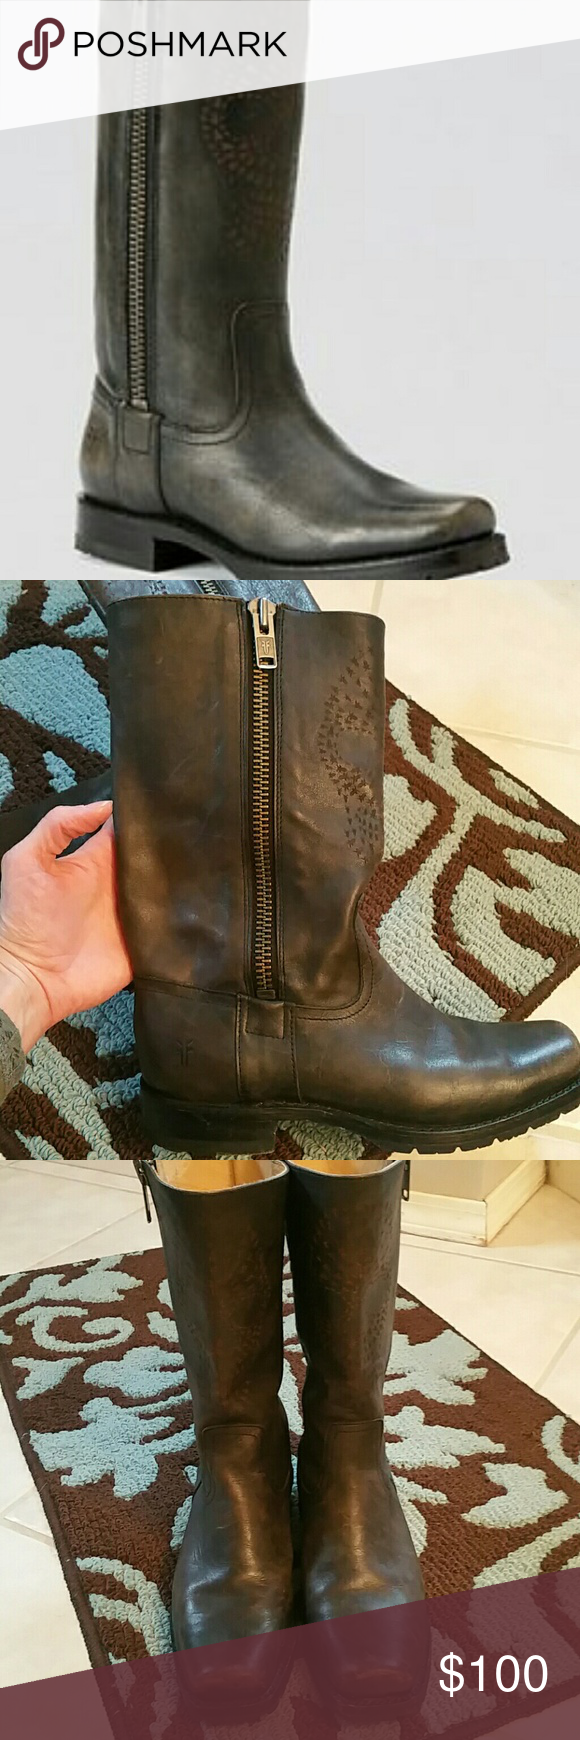 """Frye Womens Frye Heath Skull zip boot. Color is """"smoke"""" squared toe and has the """"worn in"""" look. Tread still good..not worn a whole lot. Skull print on the front with frye symbols. Super cute, just wasn't quite my style. Size 8 *no box Frye Shoes"""